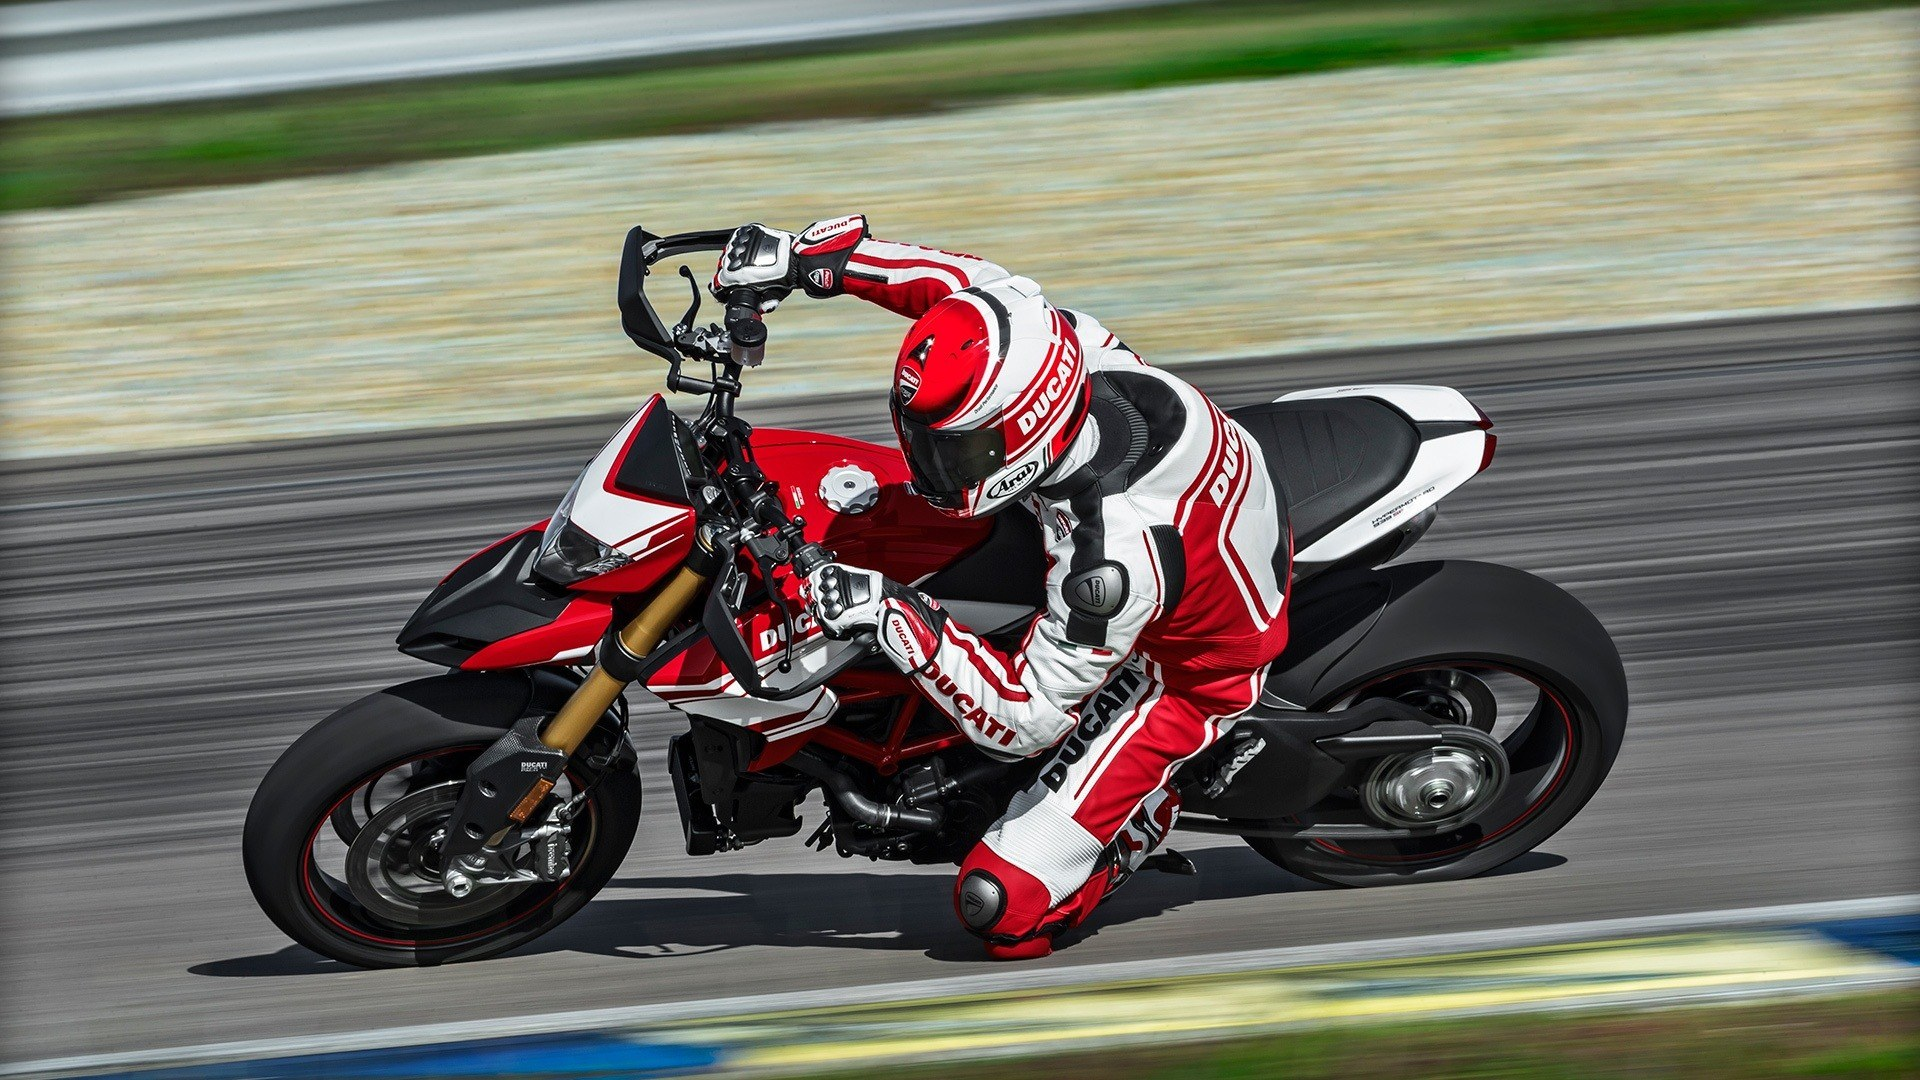 2016 Ducati Hypermotard 939 SP in Miami, Florida